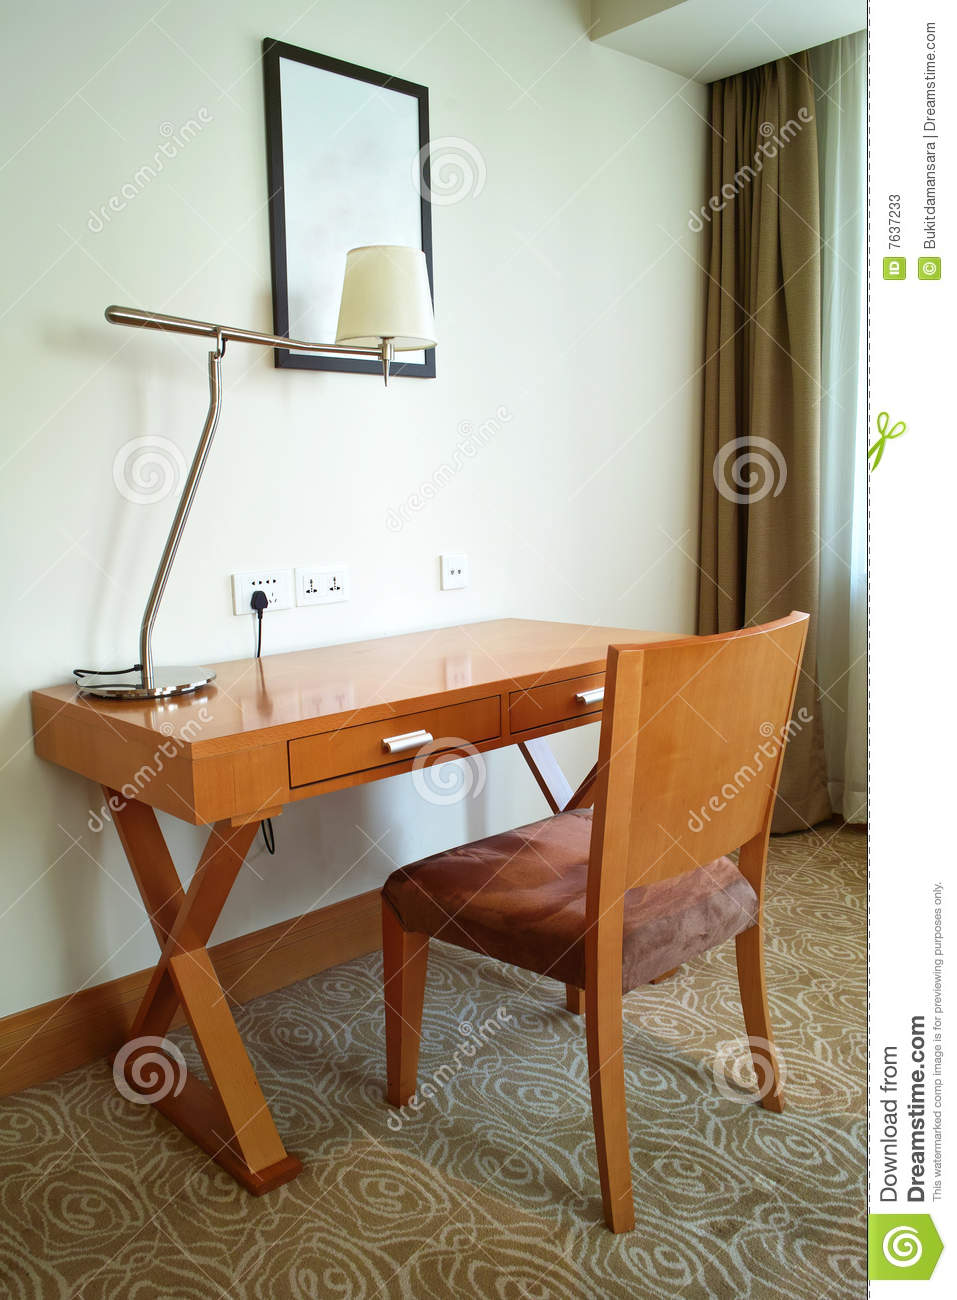 Study Desk & Chair Stock Photos - Image: 7637233